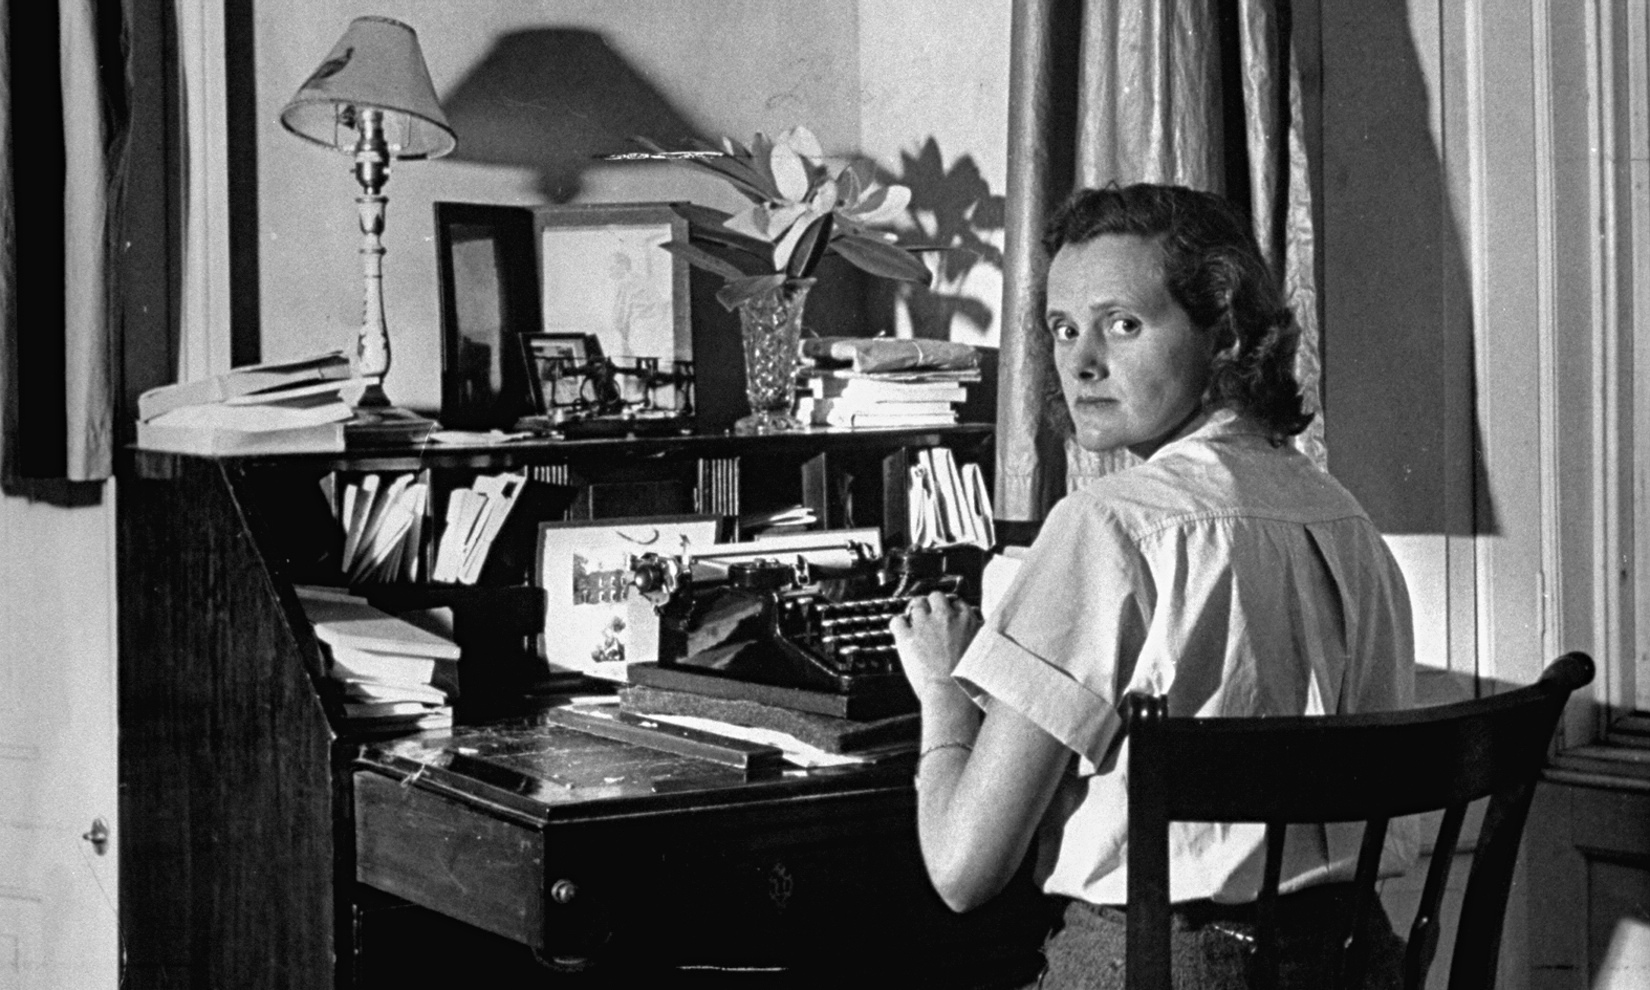 https://static-secure.guim.co.uk/sys-images/Guardian/Pix/pictures/2014/8/20/1408539945423/Author-Daphine-Du-Maurier-011.jpg